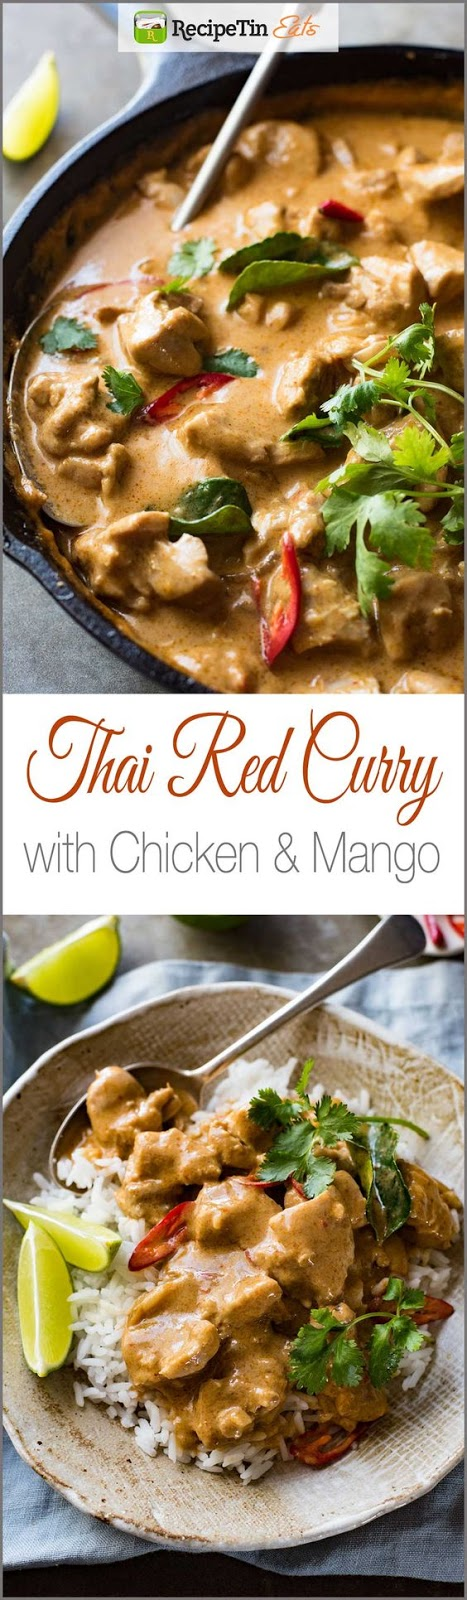 THAI RED CURRY WITH CHICKEN & MANGO